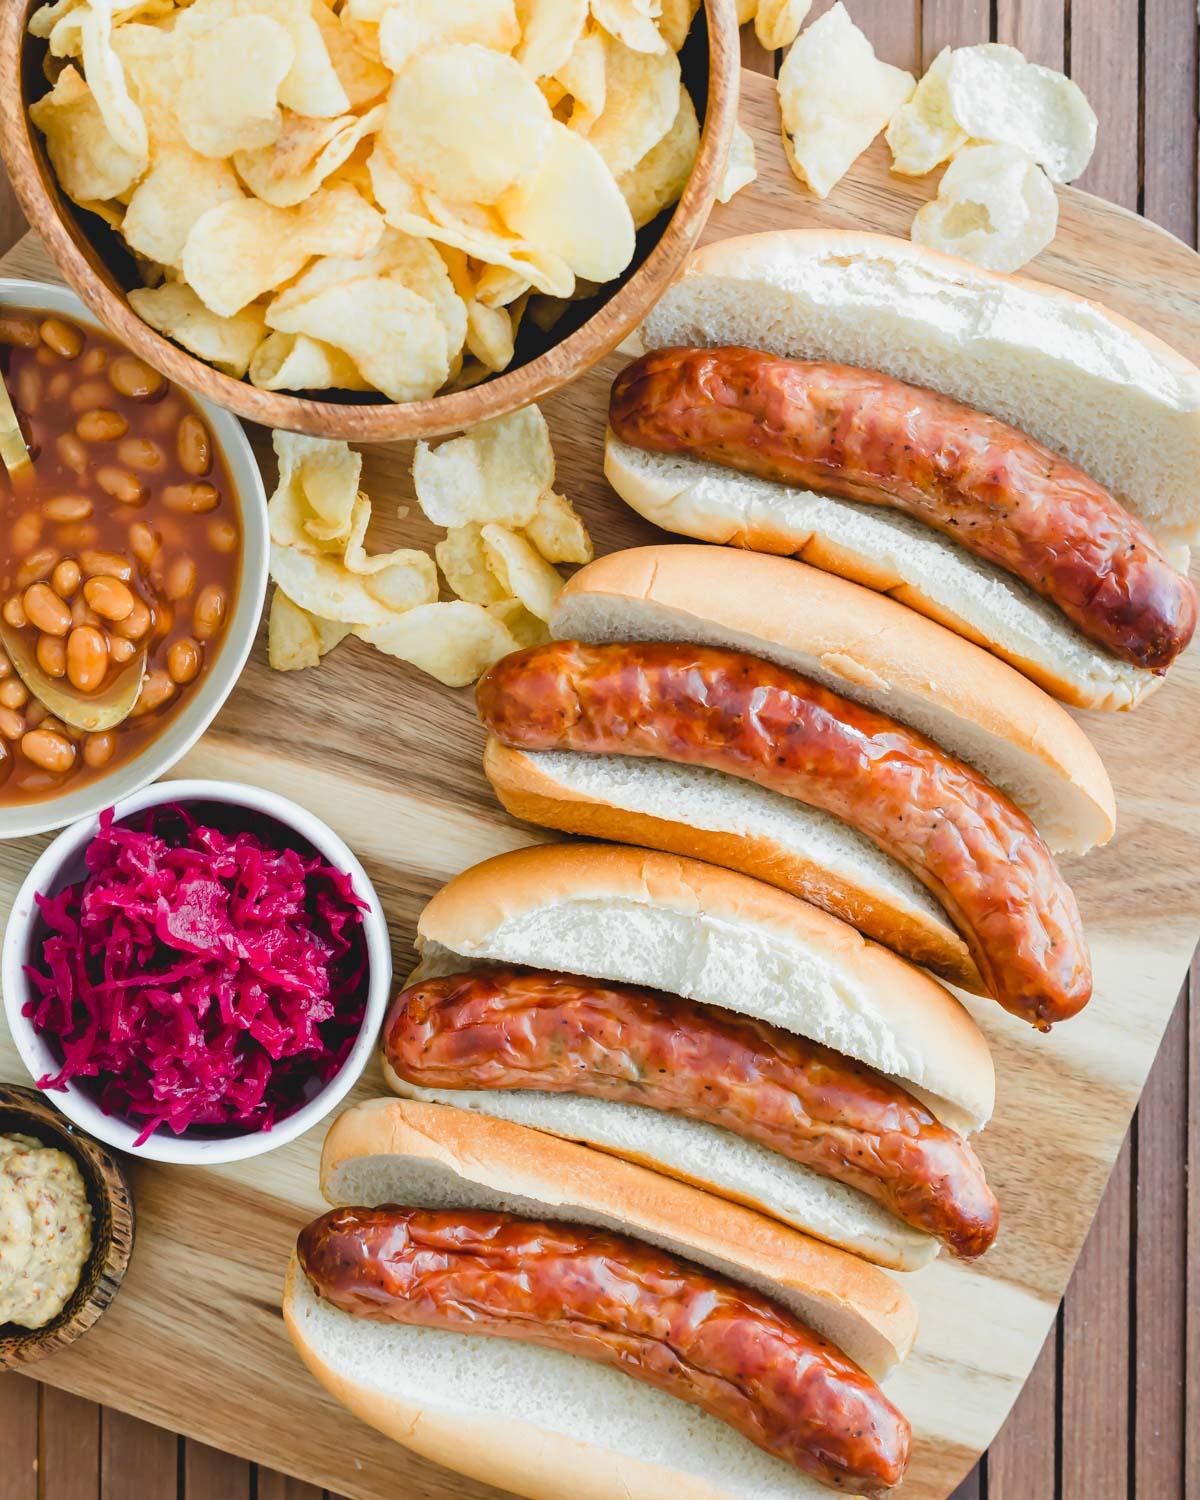 Perfectly cooked juicy bratwurst in the air fryer served with buns, potato chips, baked beans and sauerkraut.